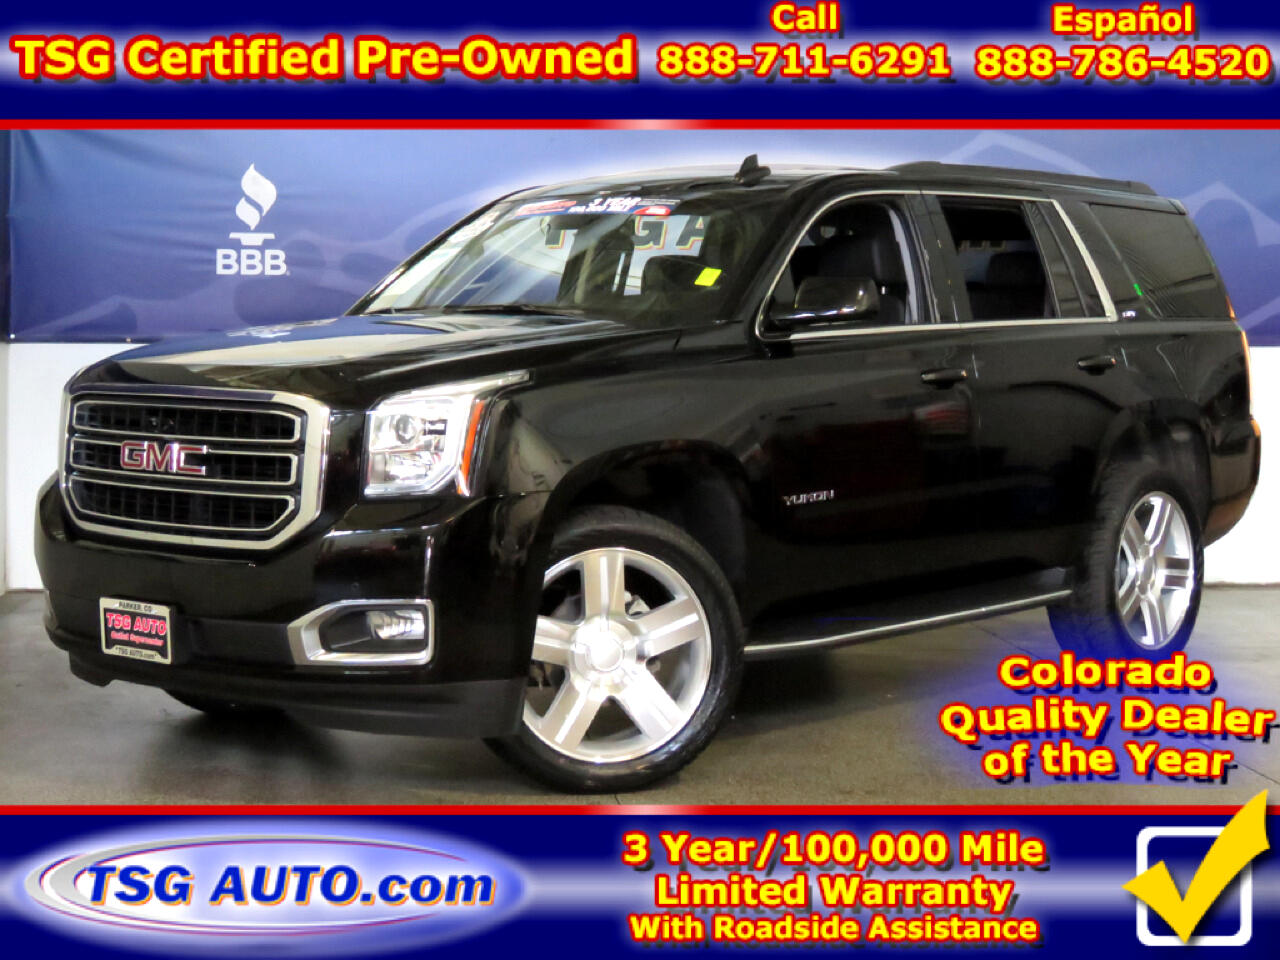 2018 GMC Yukon SLT 5.3L V8 4WD W/Leather SunRoof